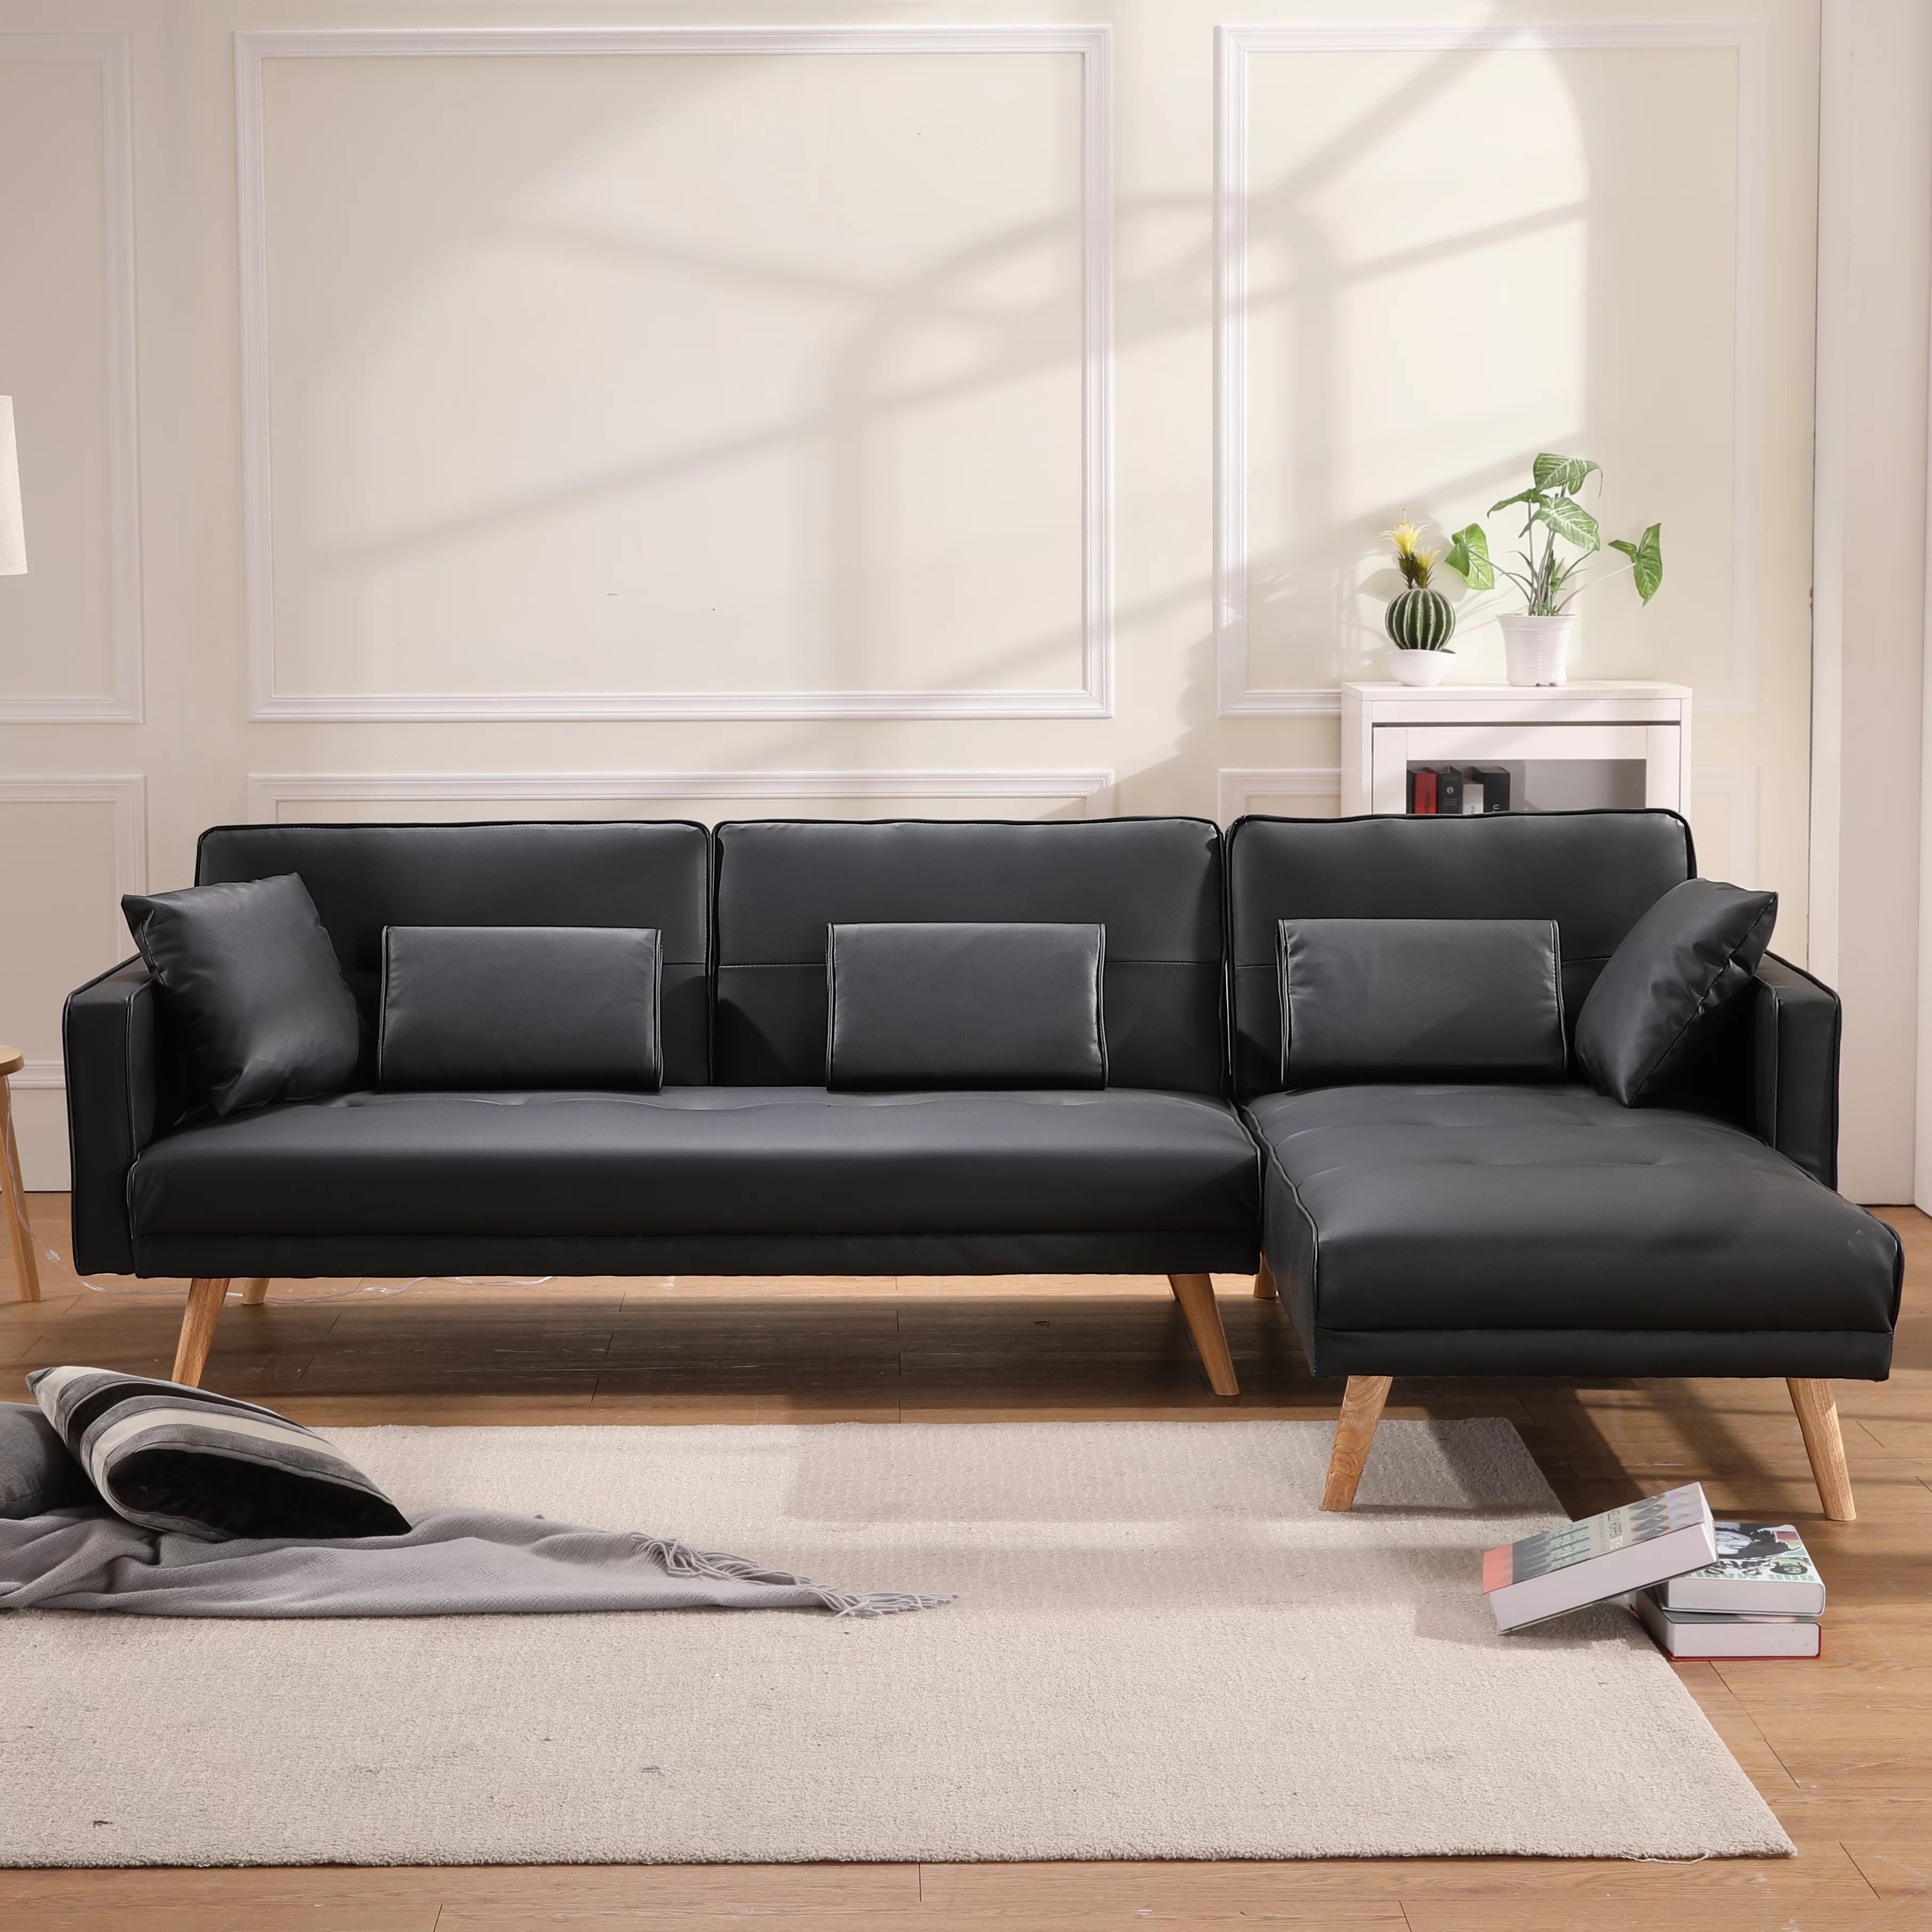 oliveira 92 1 wide faux leather right hand facing sleeper sofa chaise